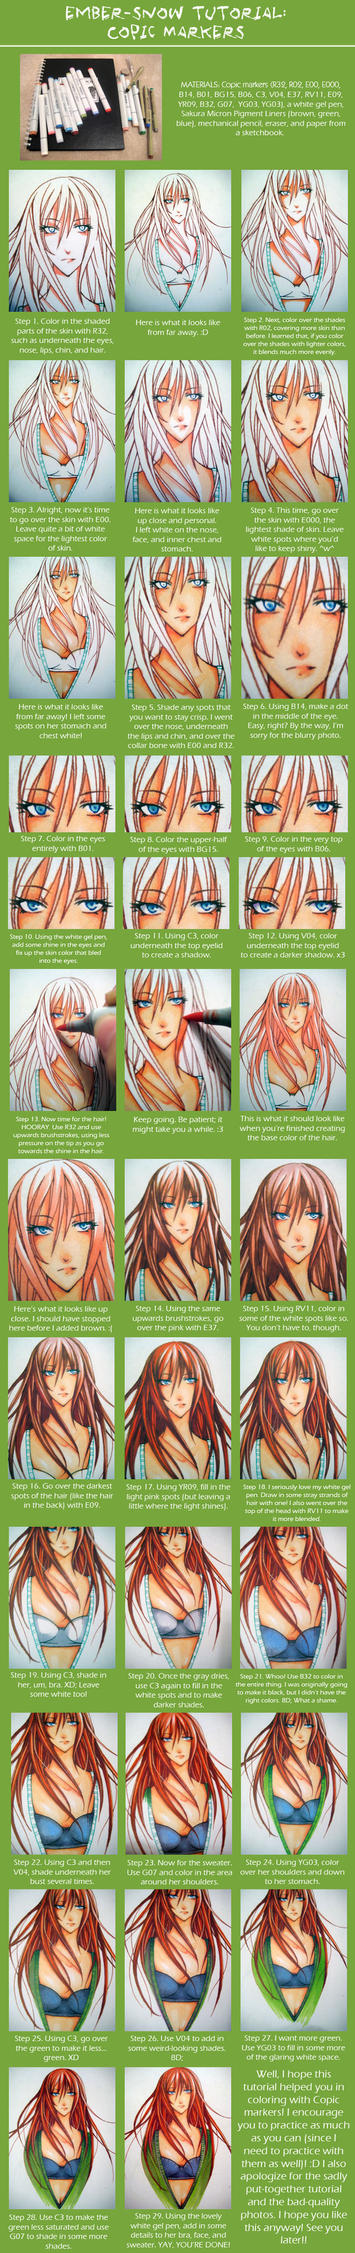 TUTORIAL: Copic Markers by ember-snow